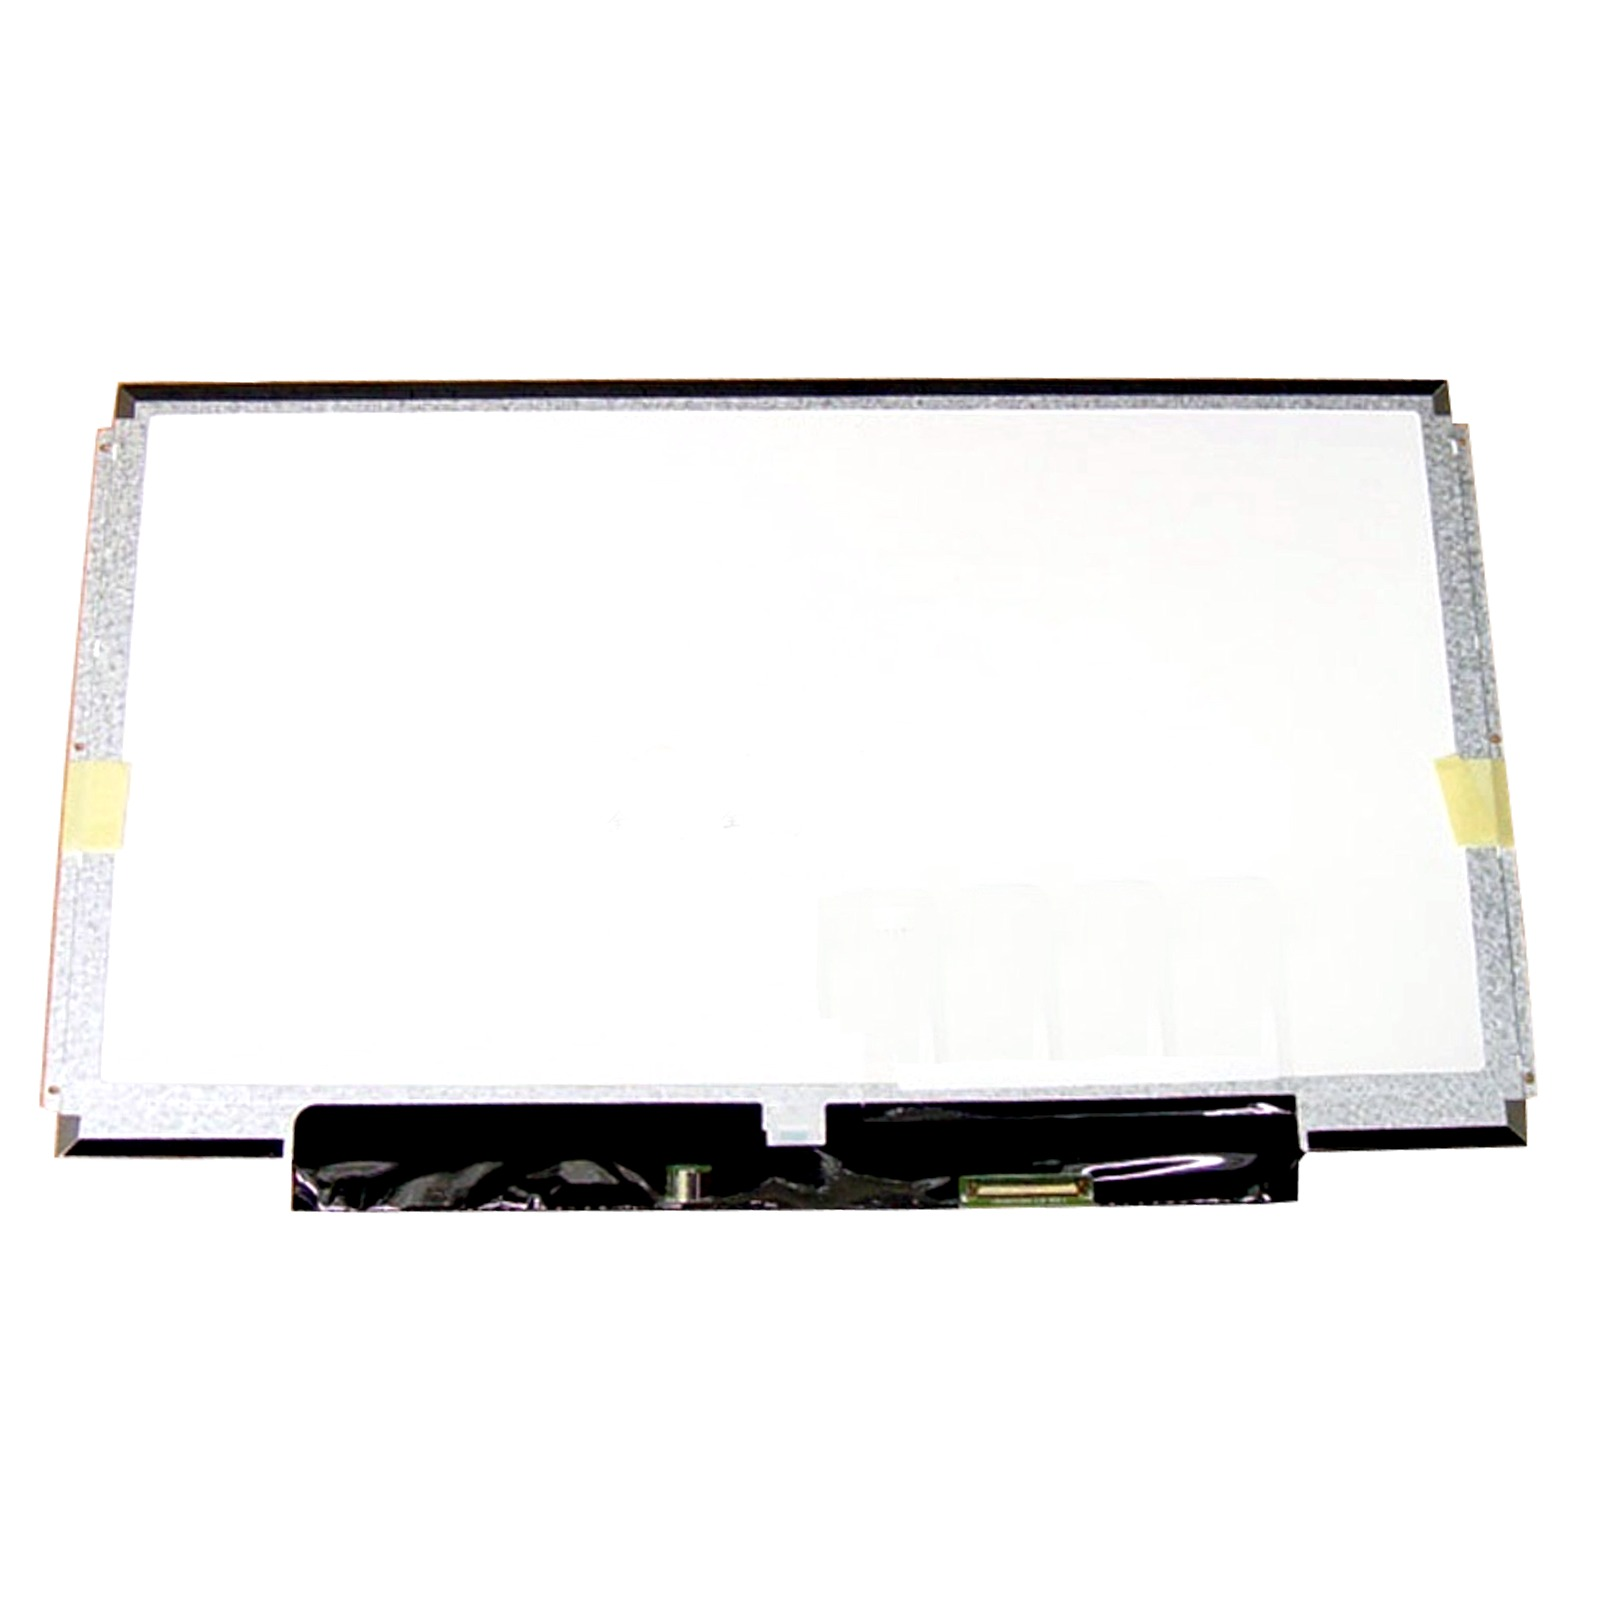 13-3-034-Led-Display-For-Sony-Vaio-VPC-S110FLB-Netbook-Display-Panel-Uk-Seller